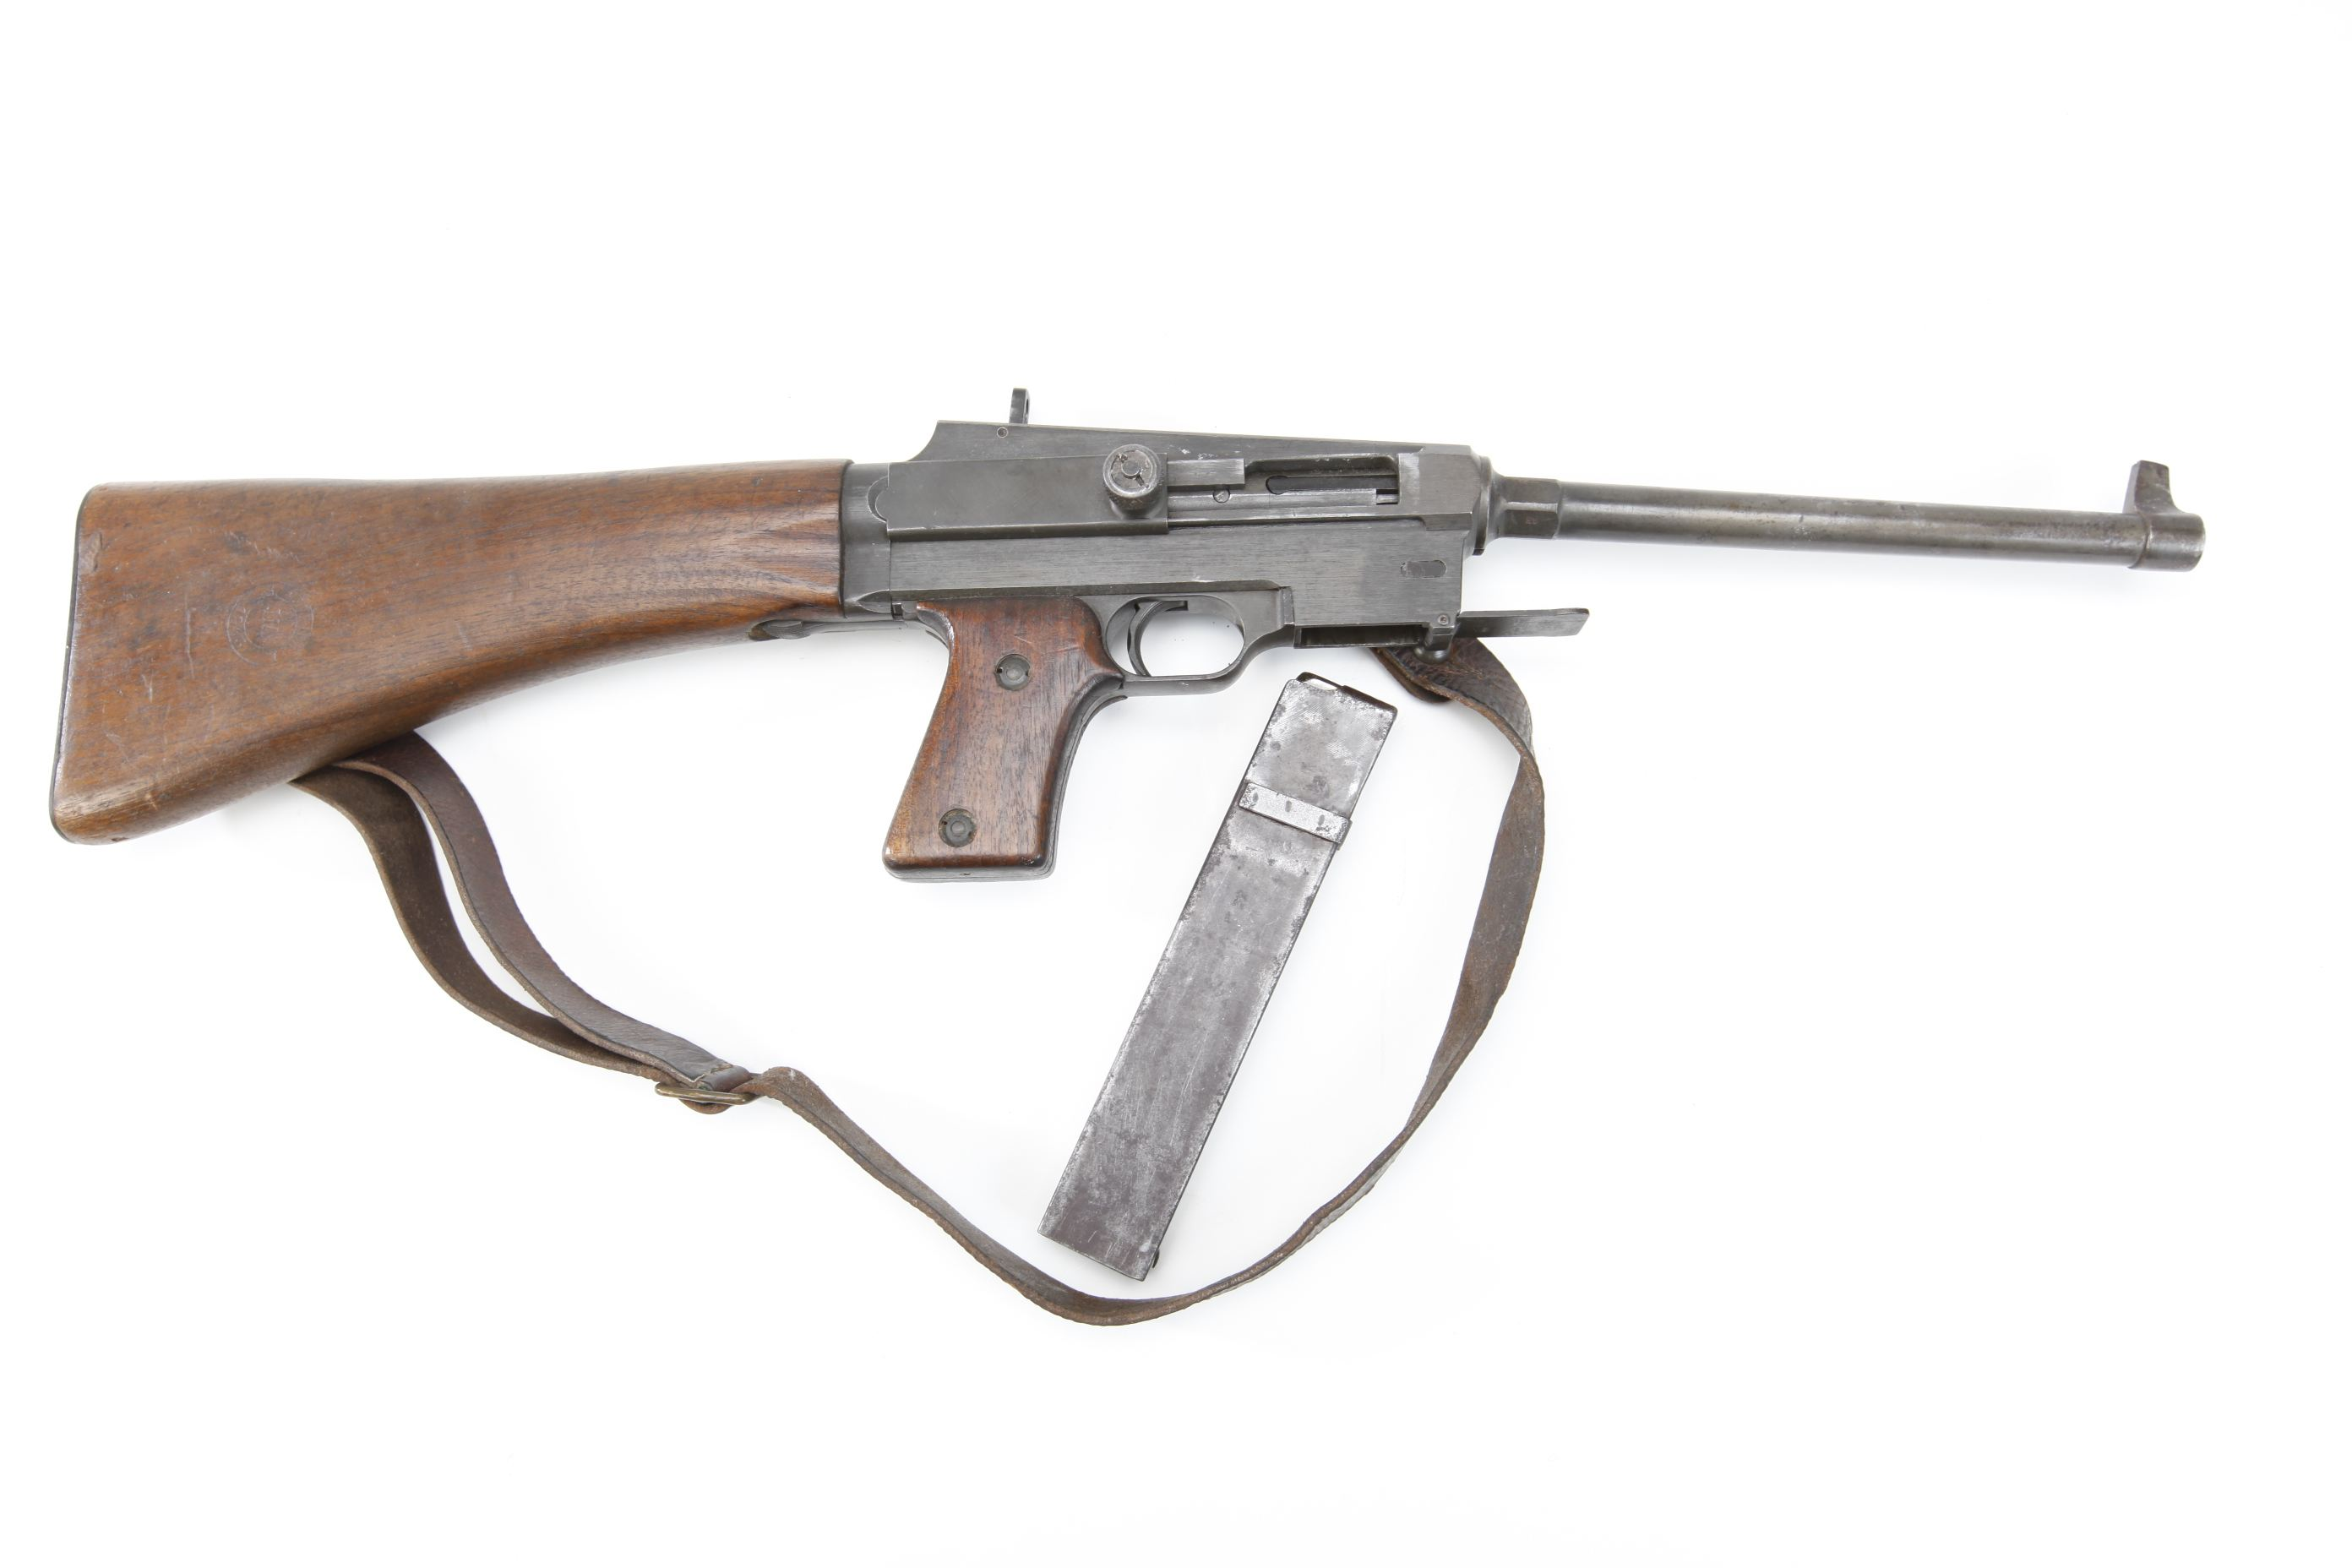 M.A.S. Model 1938 Submachine Gun